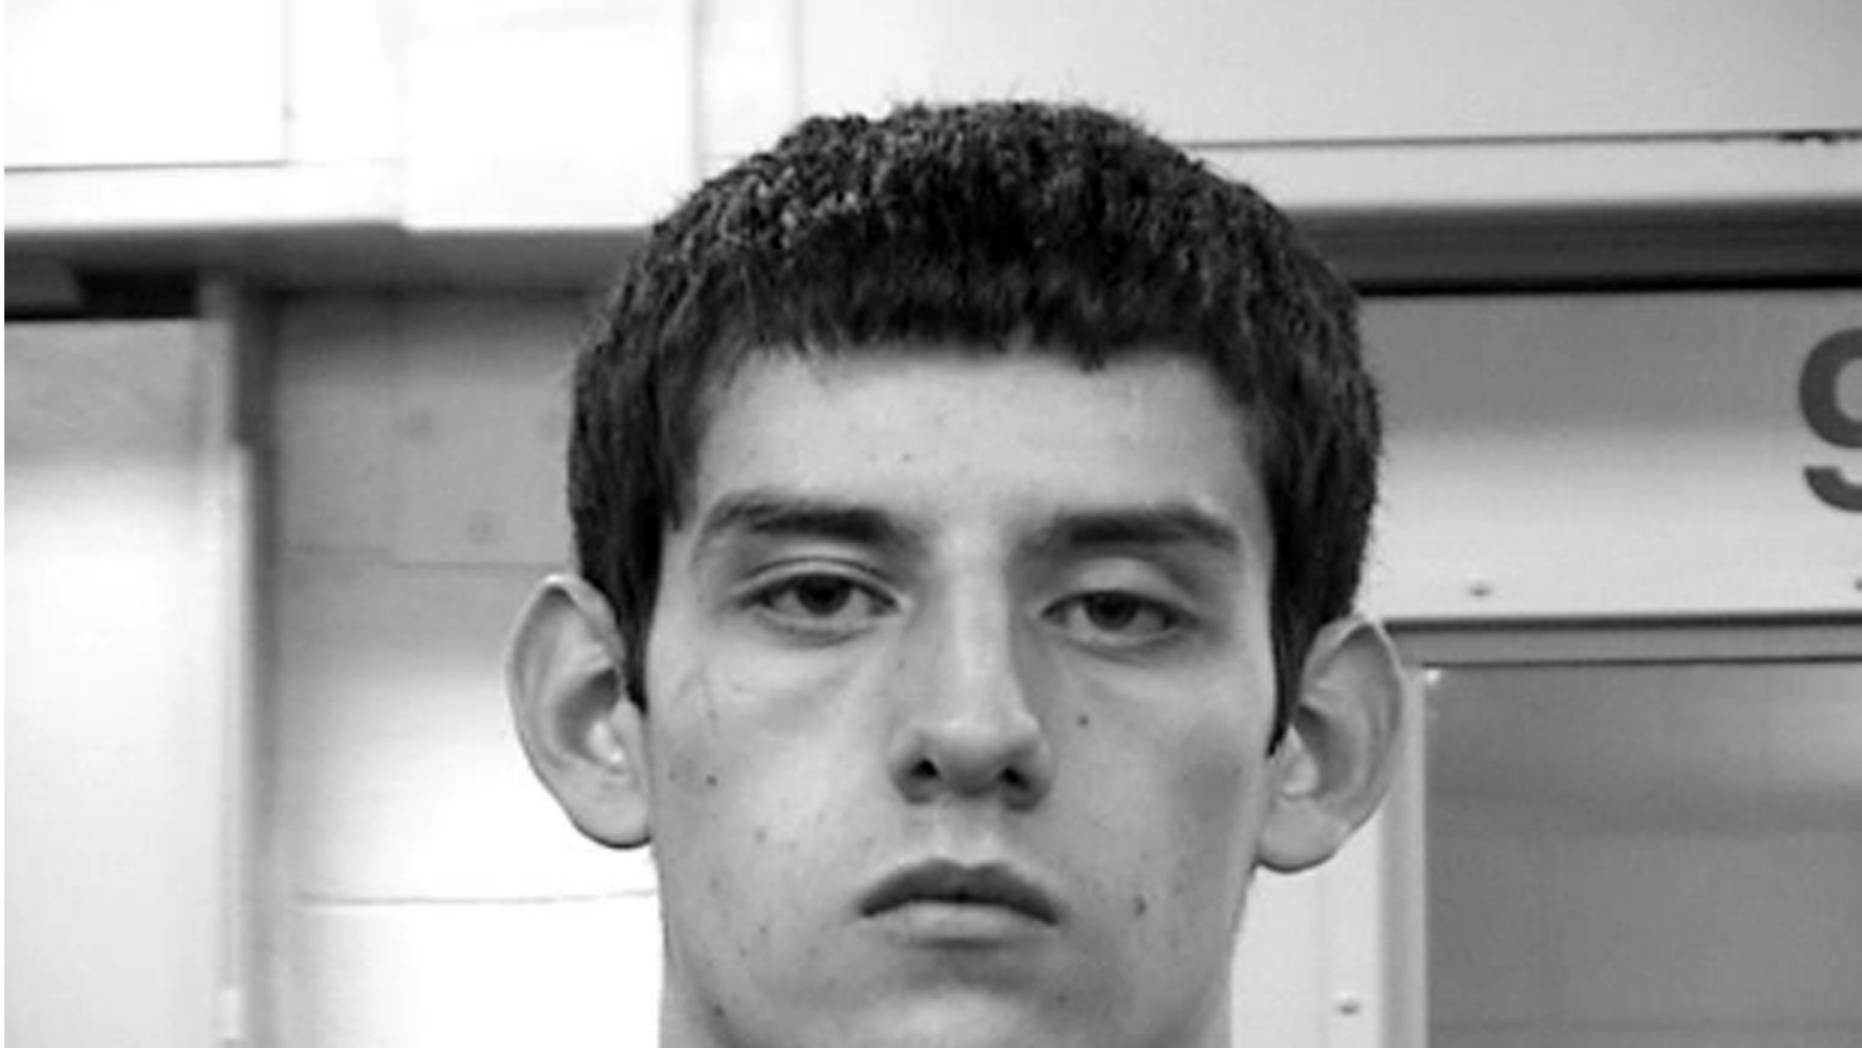 This recent but undated photo released by the Bernalillo County Sheriff's Office shows Nehemiah Griego. The New Mexico man who killed five family members in Albuquerque, N.M., as a 15-year-old is set to return to court Monday, Dec. 3, 2018, for a weeklong hearing to determine whether he has been rehabilitated while in the state's juvenile detention system.  (Bernalillo County Sheriff's Office via AP)